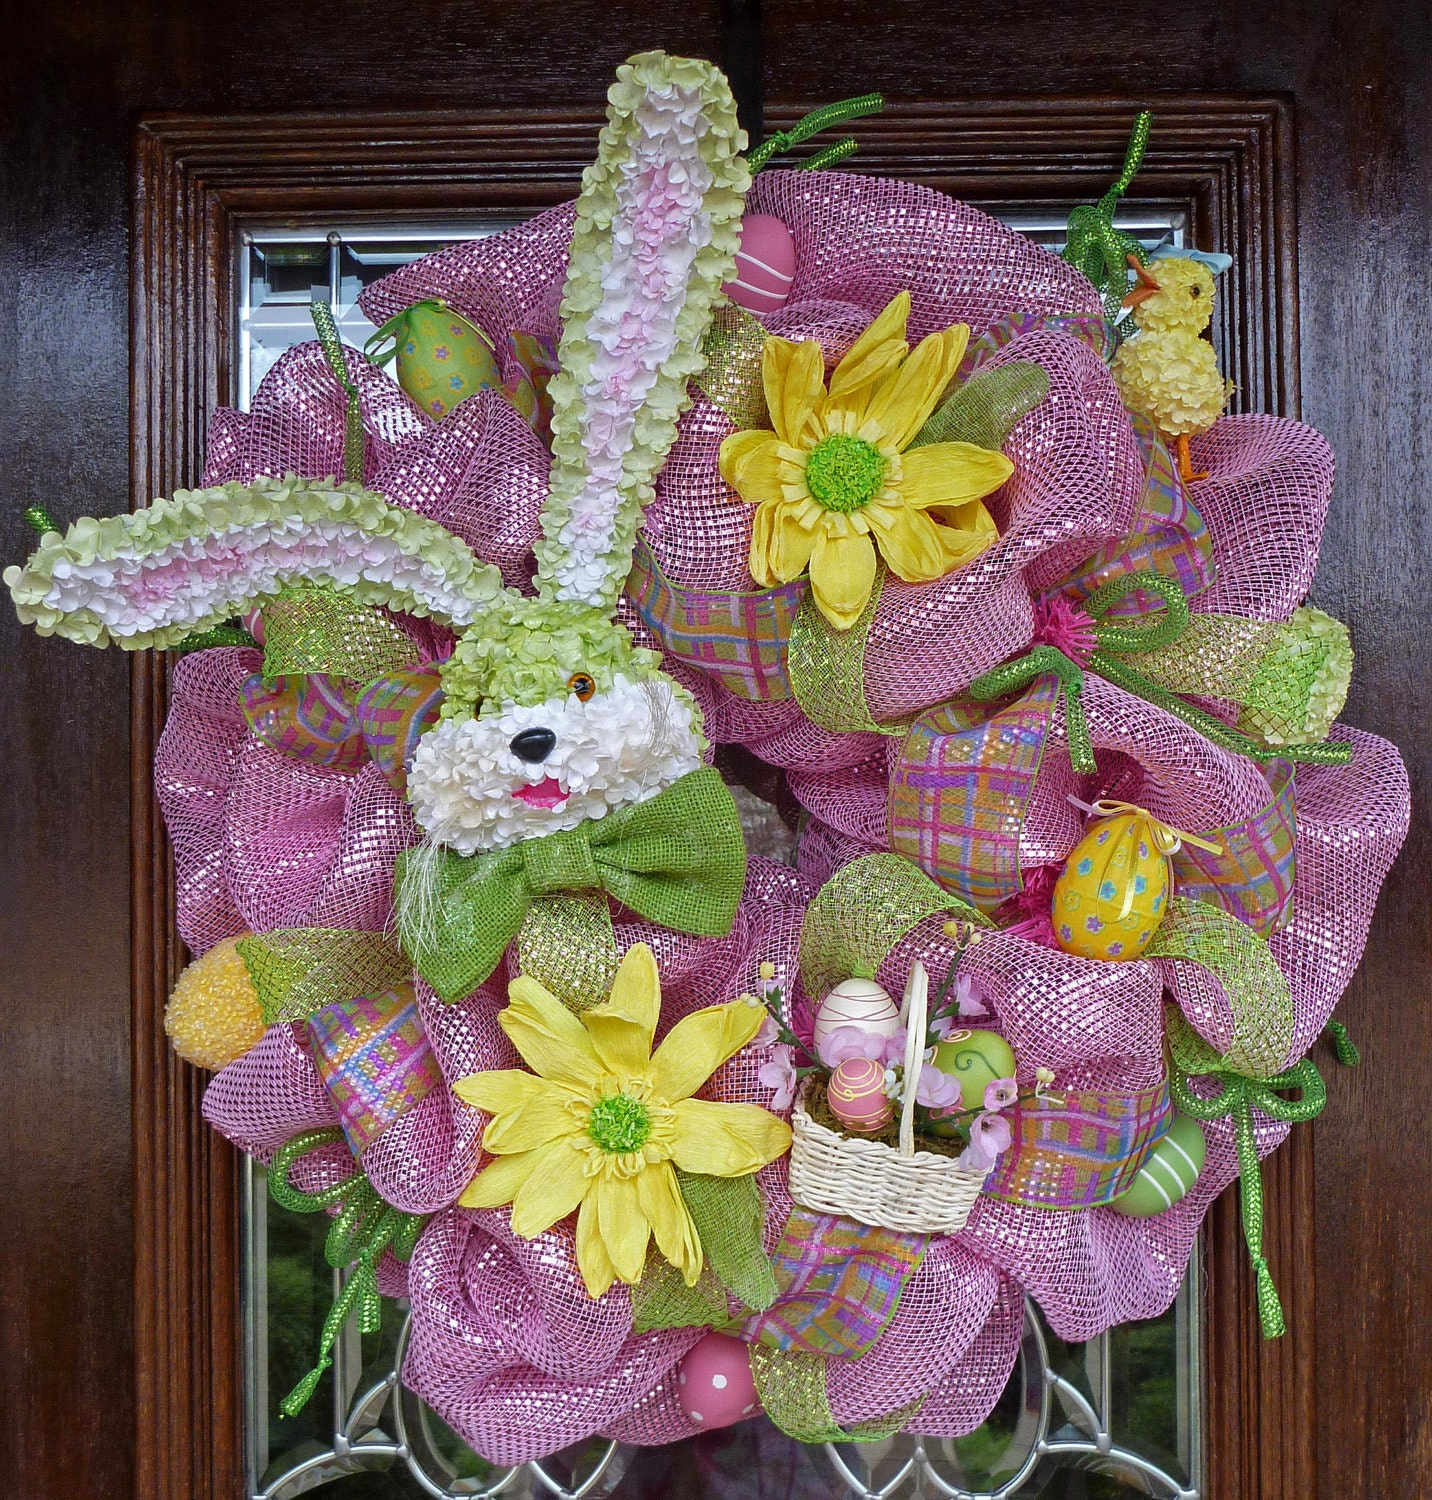 Two Silly Monkeys Easter Basket Wreath: Deco Mesh Whimsical Easter Wreath Making Room For The